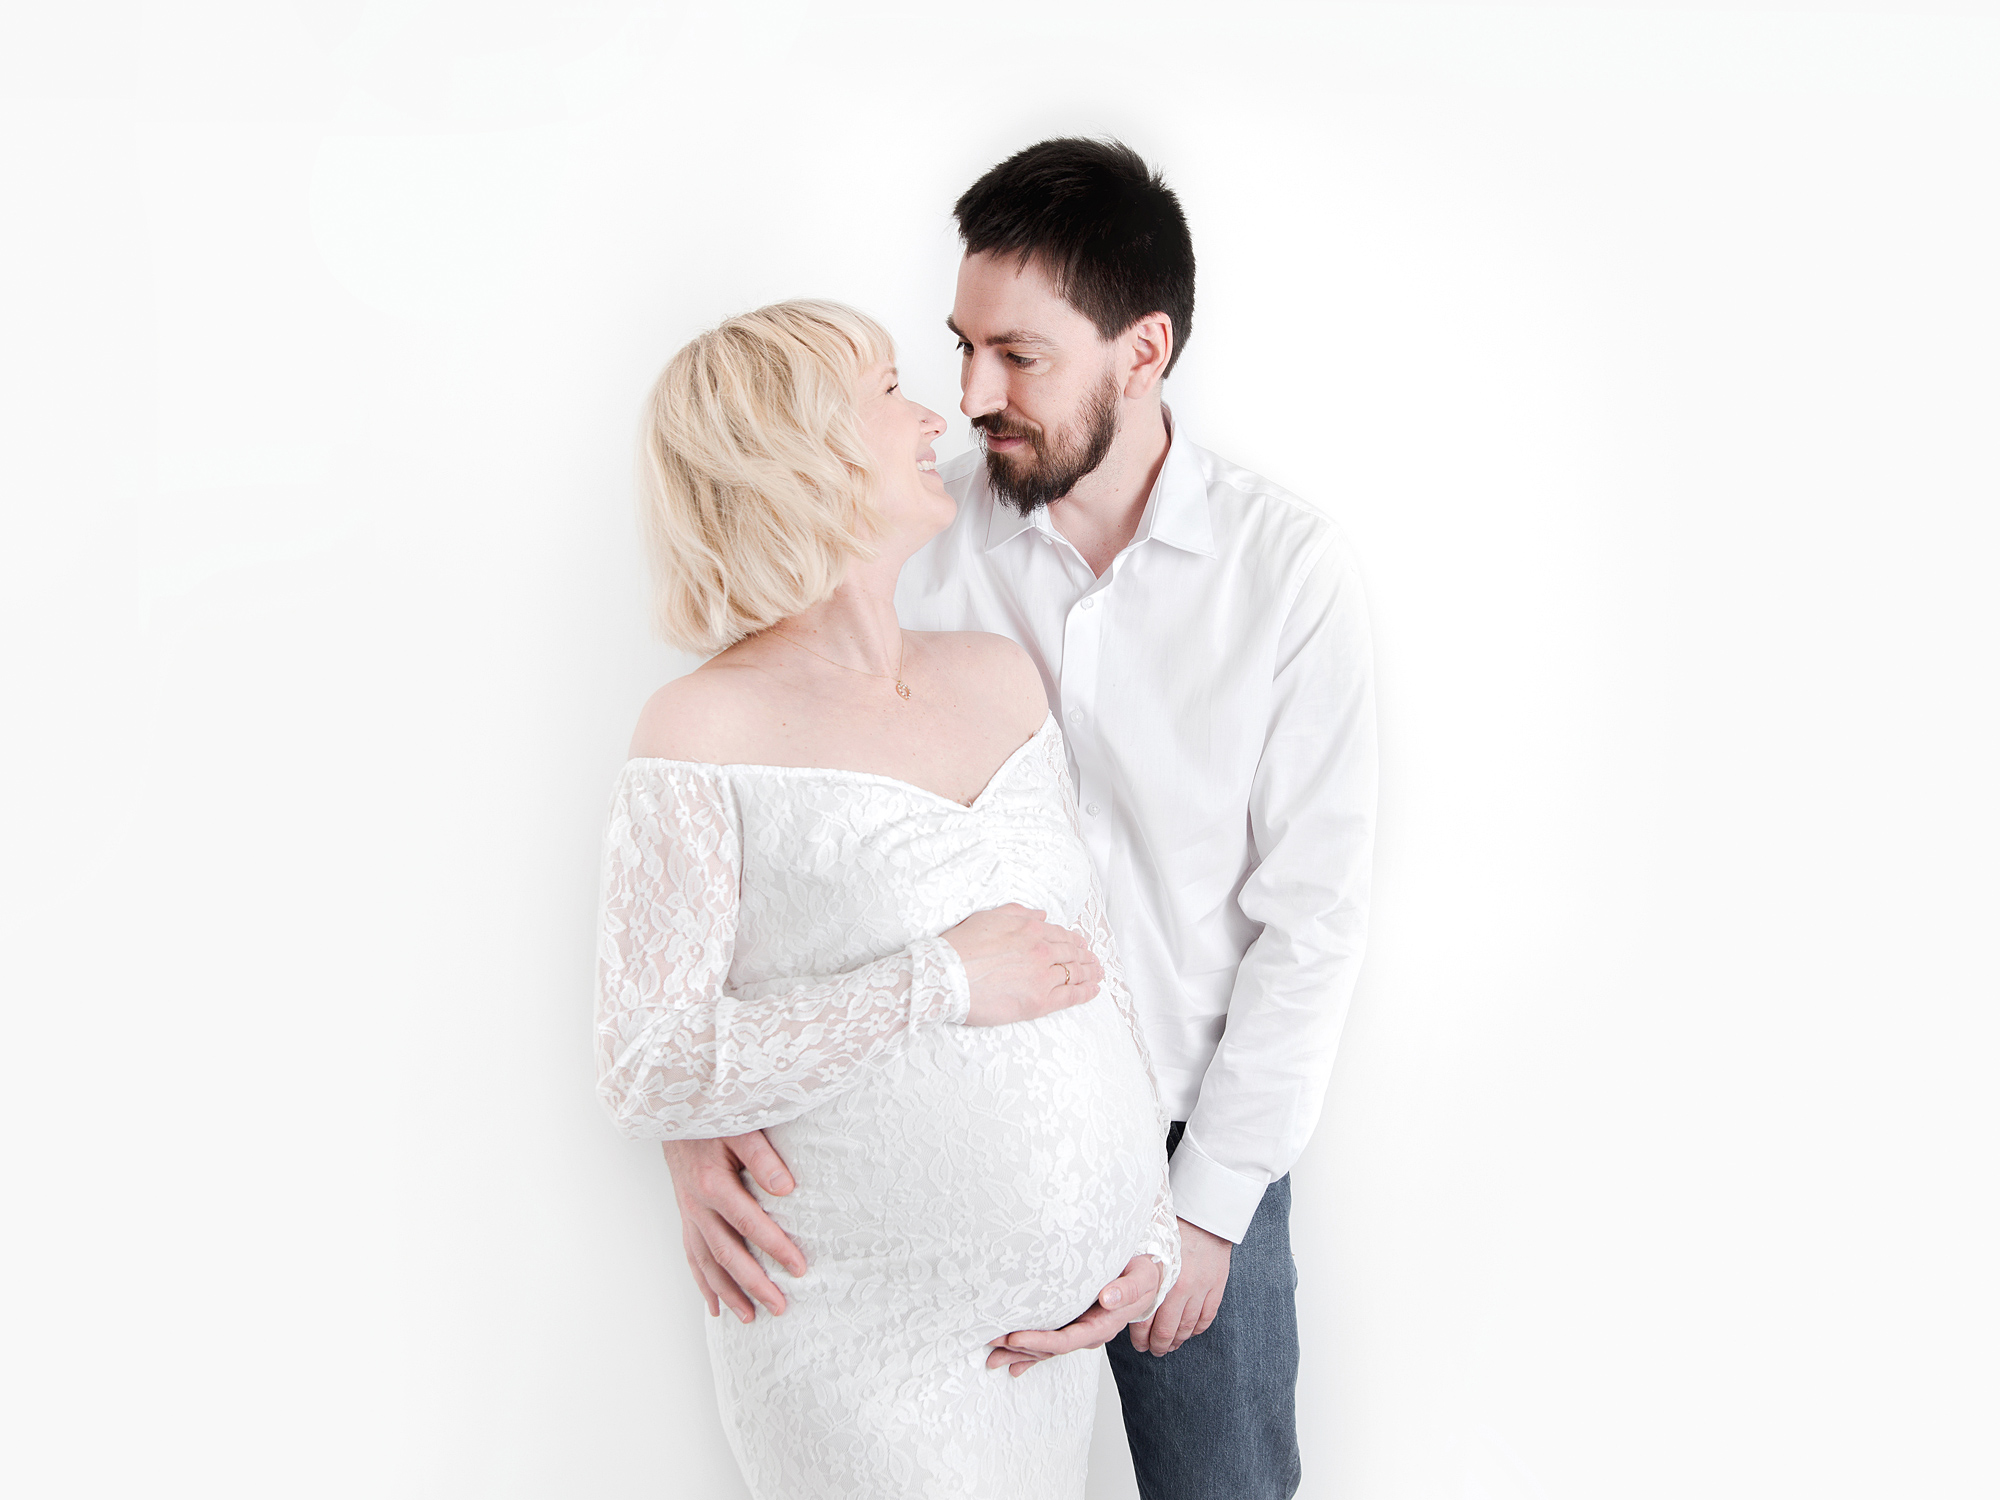 partner cuddling belly pregnancy maternity photography edinburgh midlothian